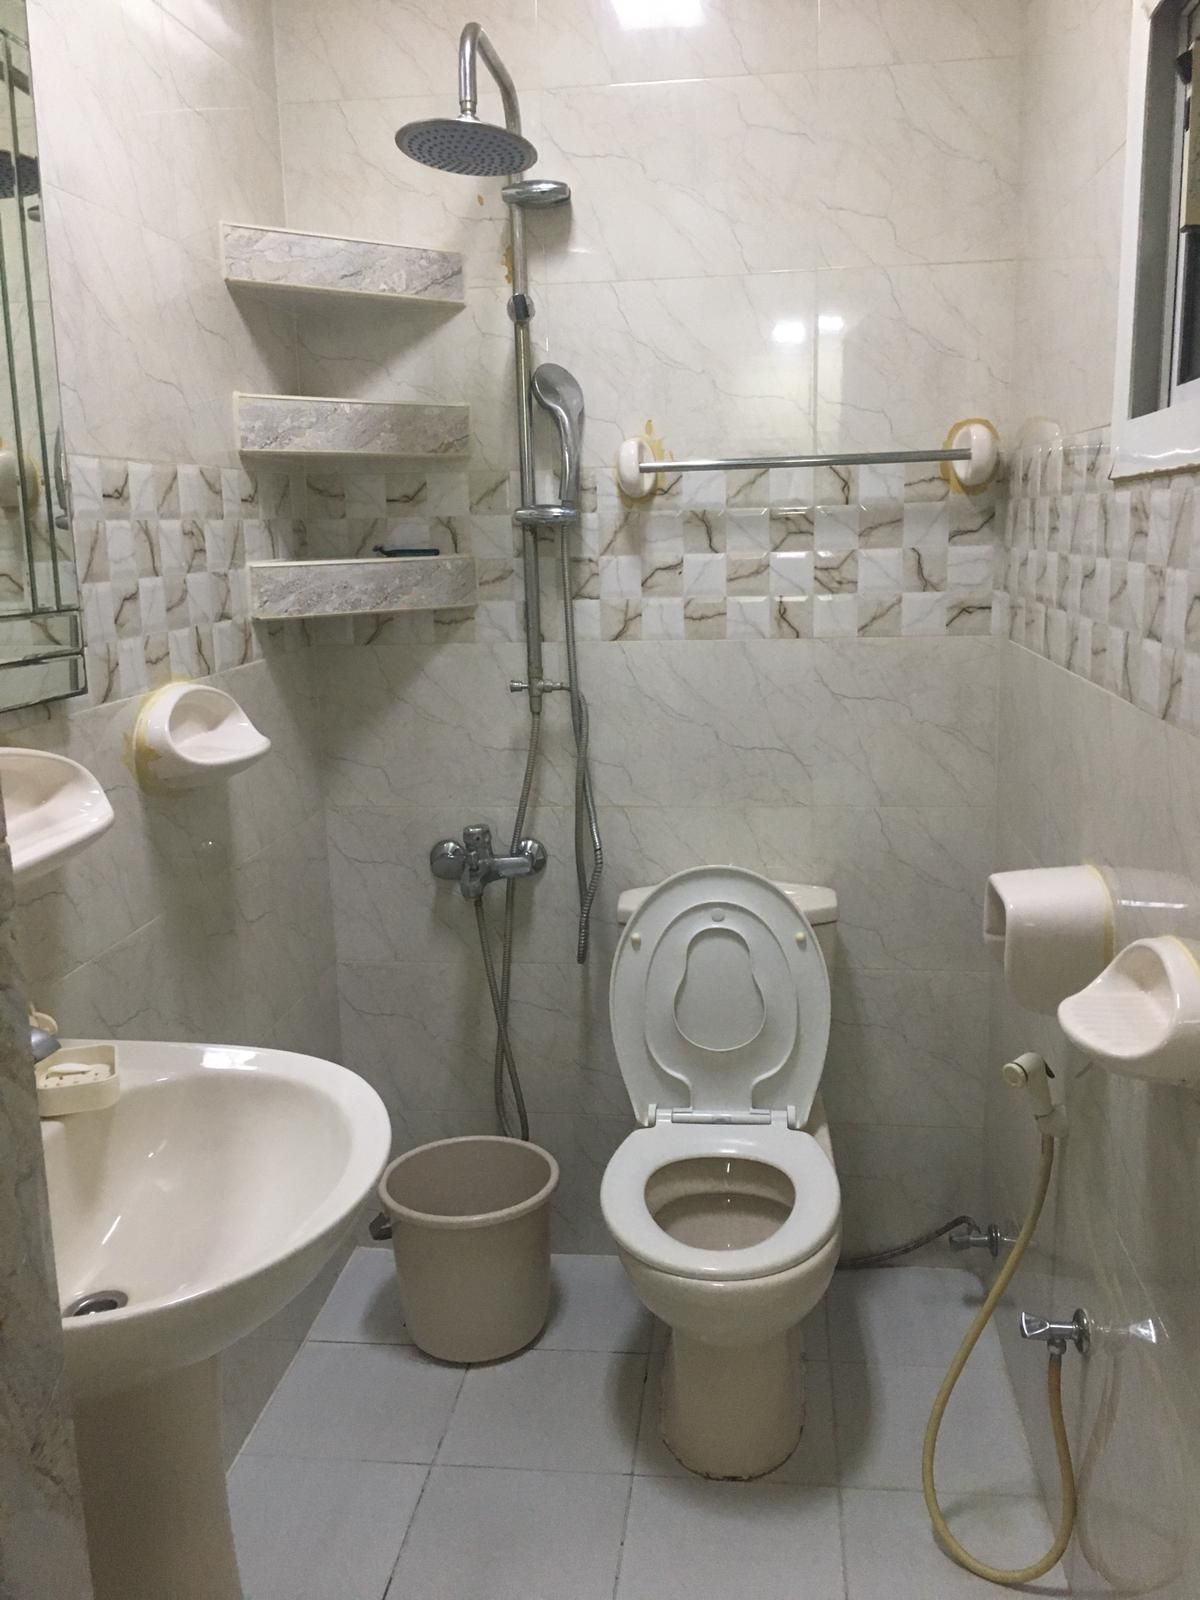 Apartment in a private residence in Jirdab consisting of two rooms, two bathrooms, a hall, a kitchen, a washing area and a car park A unit room with f